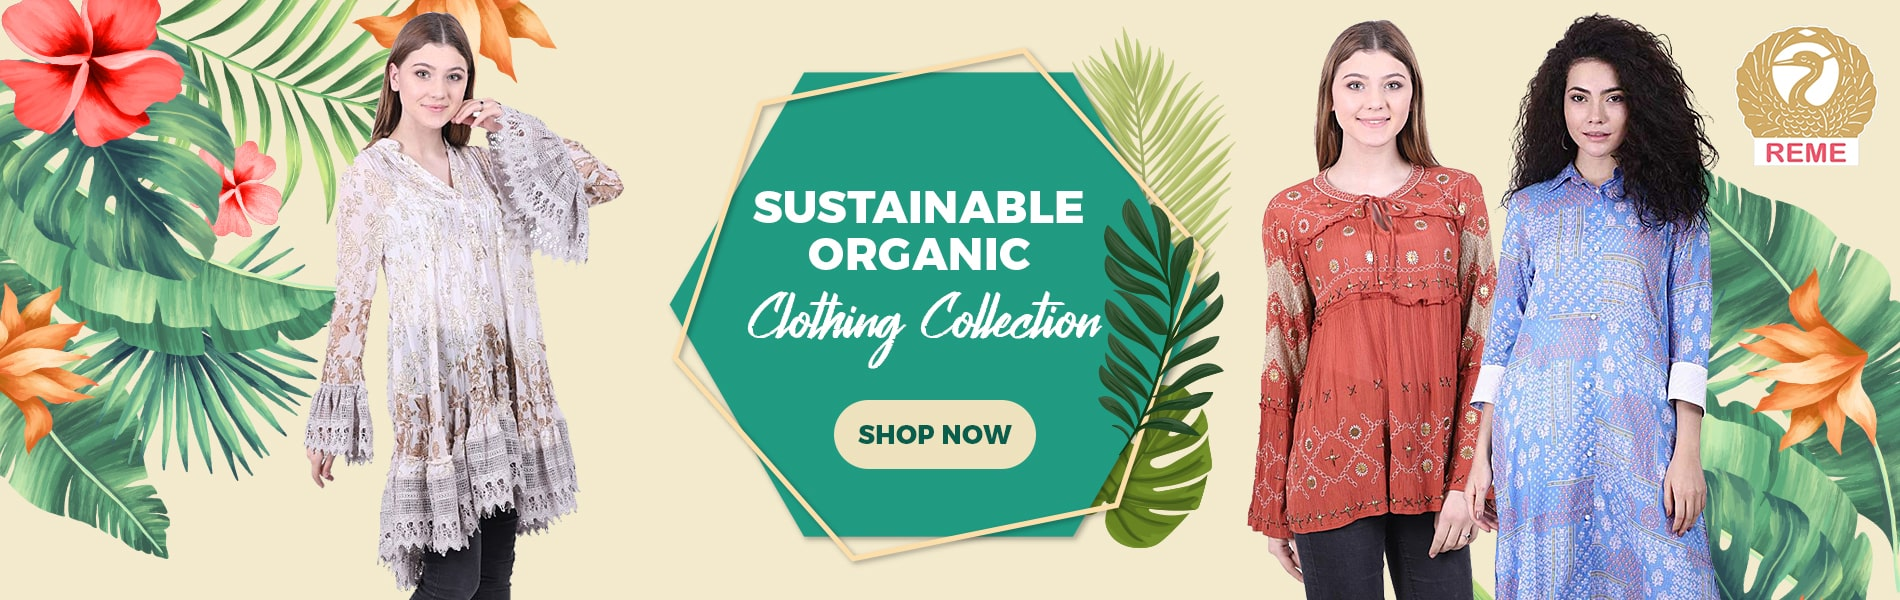 REME Organic Clothing collection